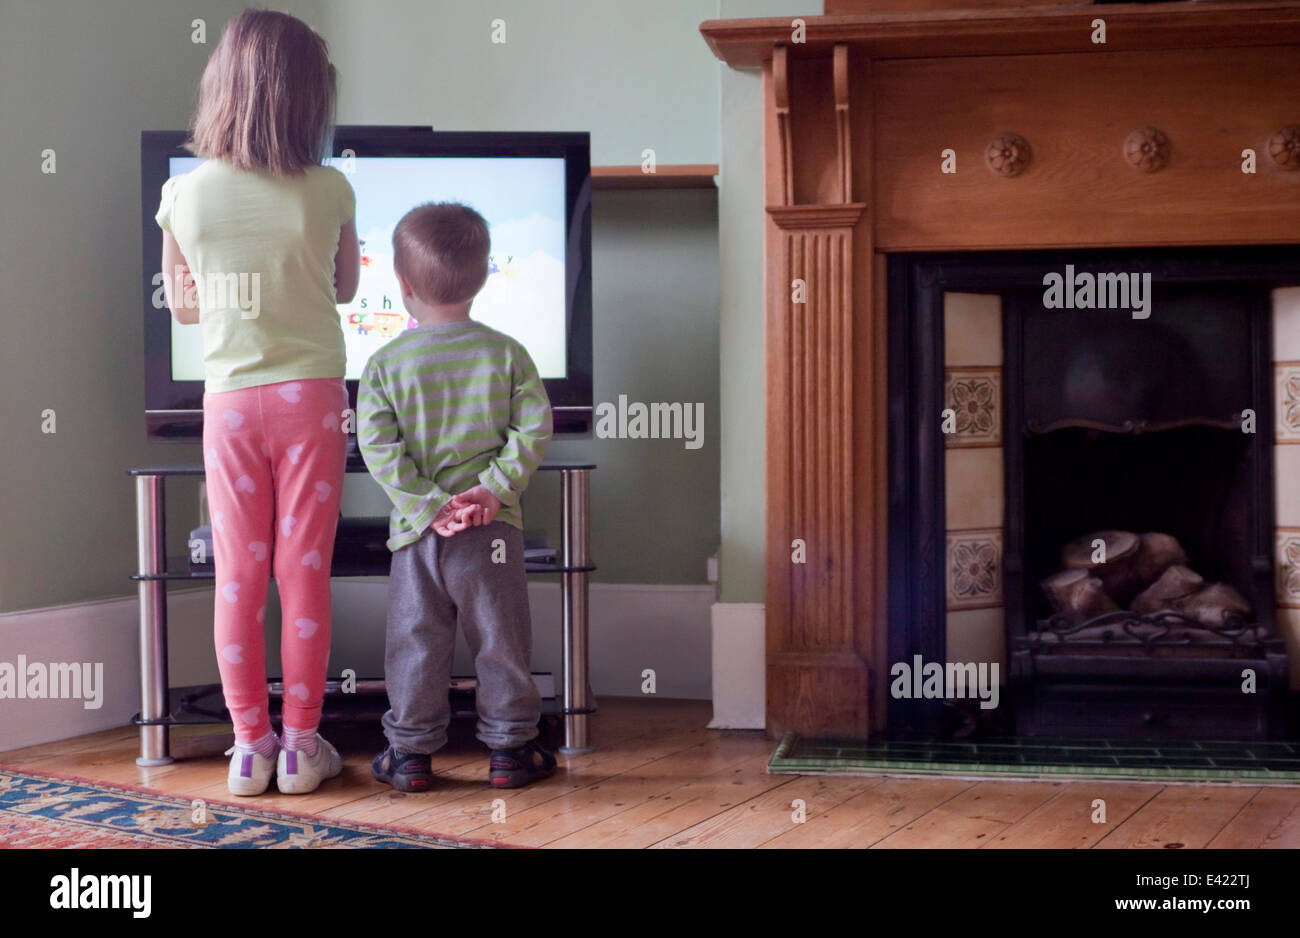 Rear view of sister and brother standing too close to and watching TV - Stock Image